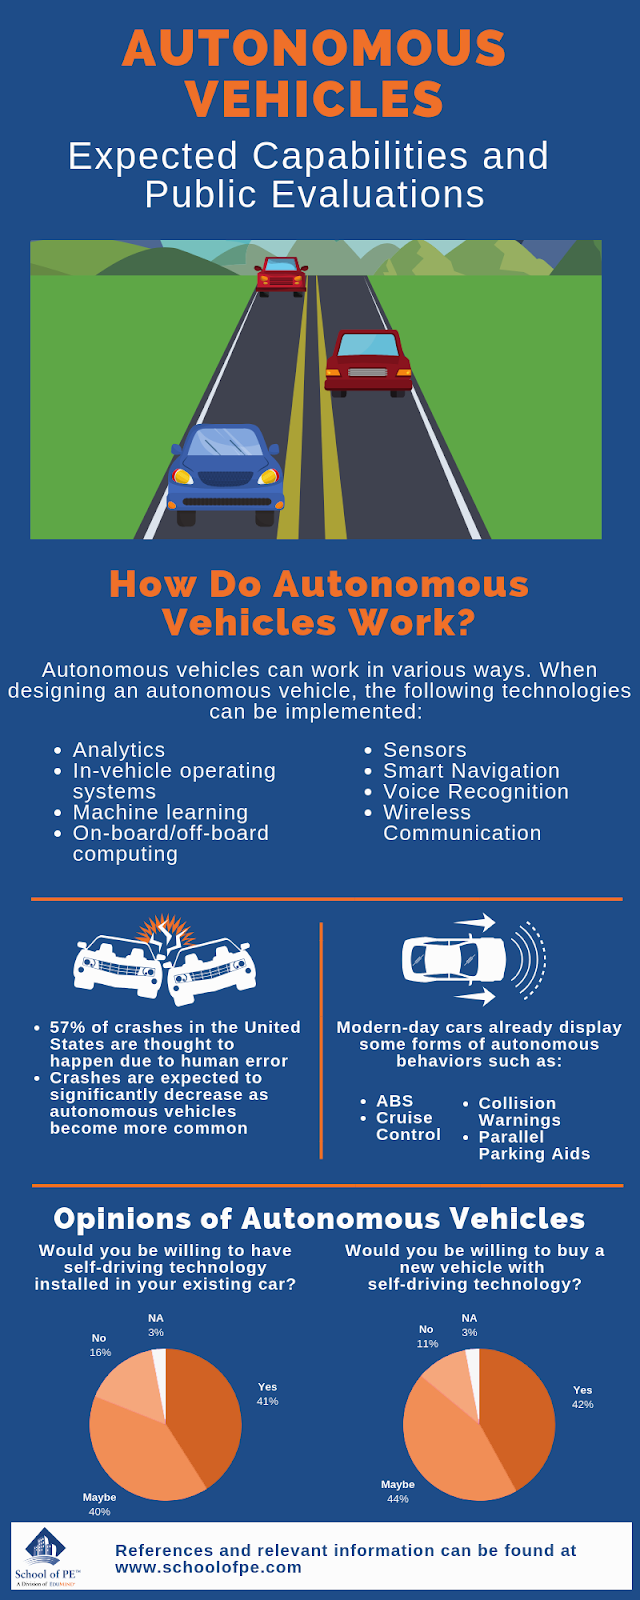 It is expected for autonomous vehicles to outnumber human-driven vehicles by 2030. With a big push for autonomous vehicles, professional engineers are constantly evaluating practicality and safety for self-driving cars